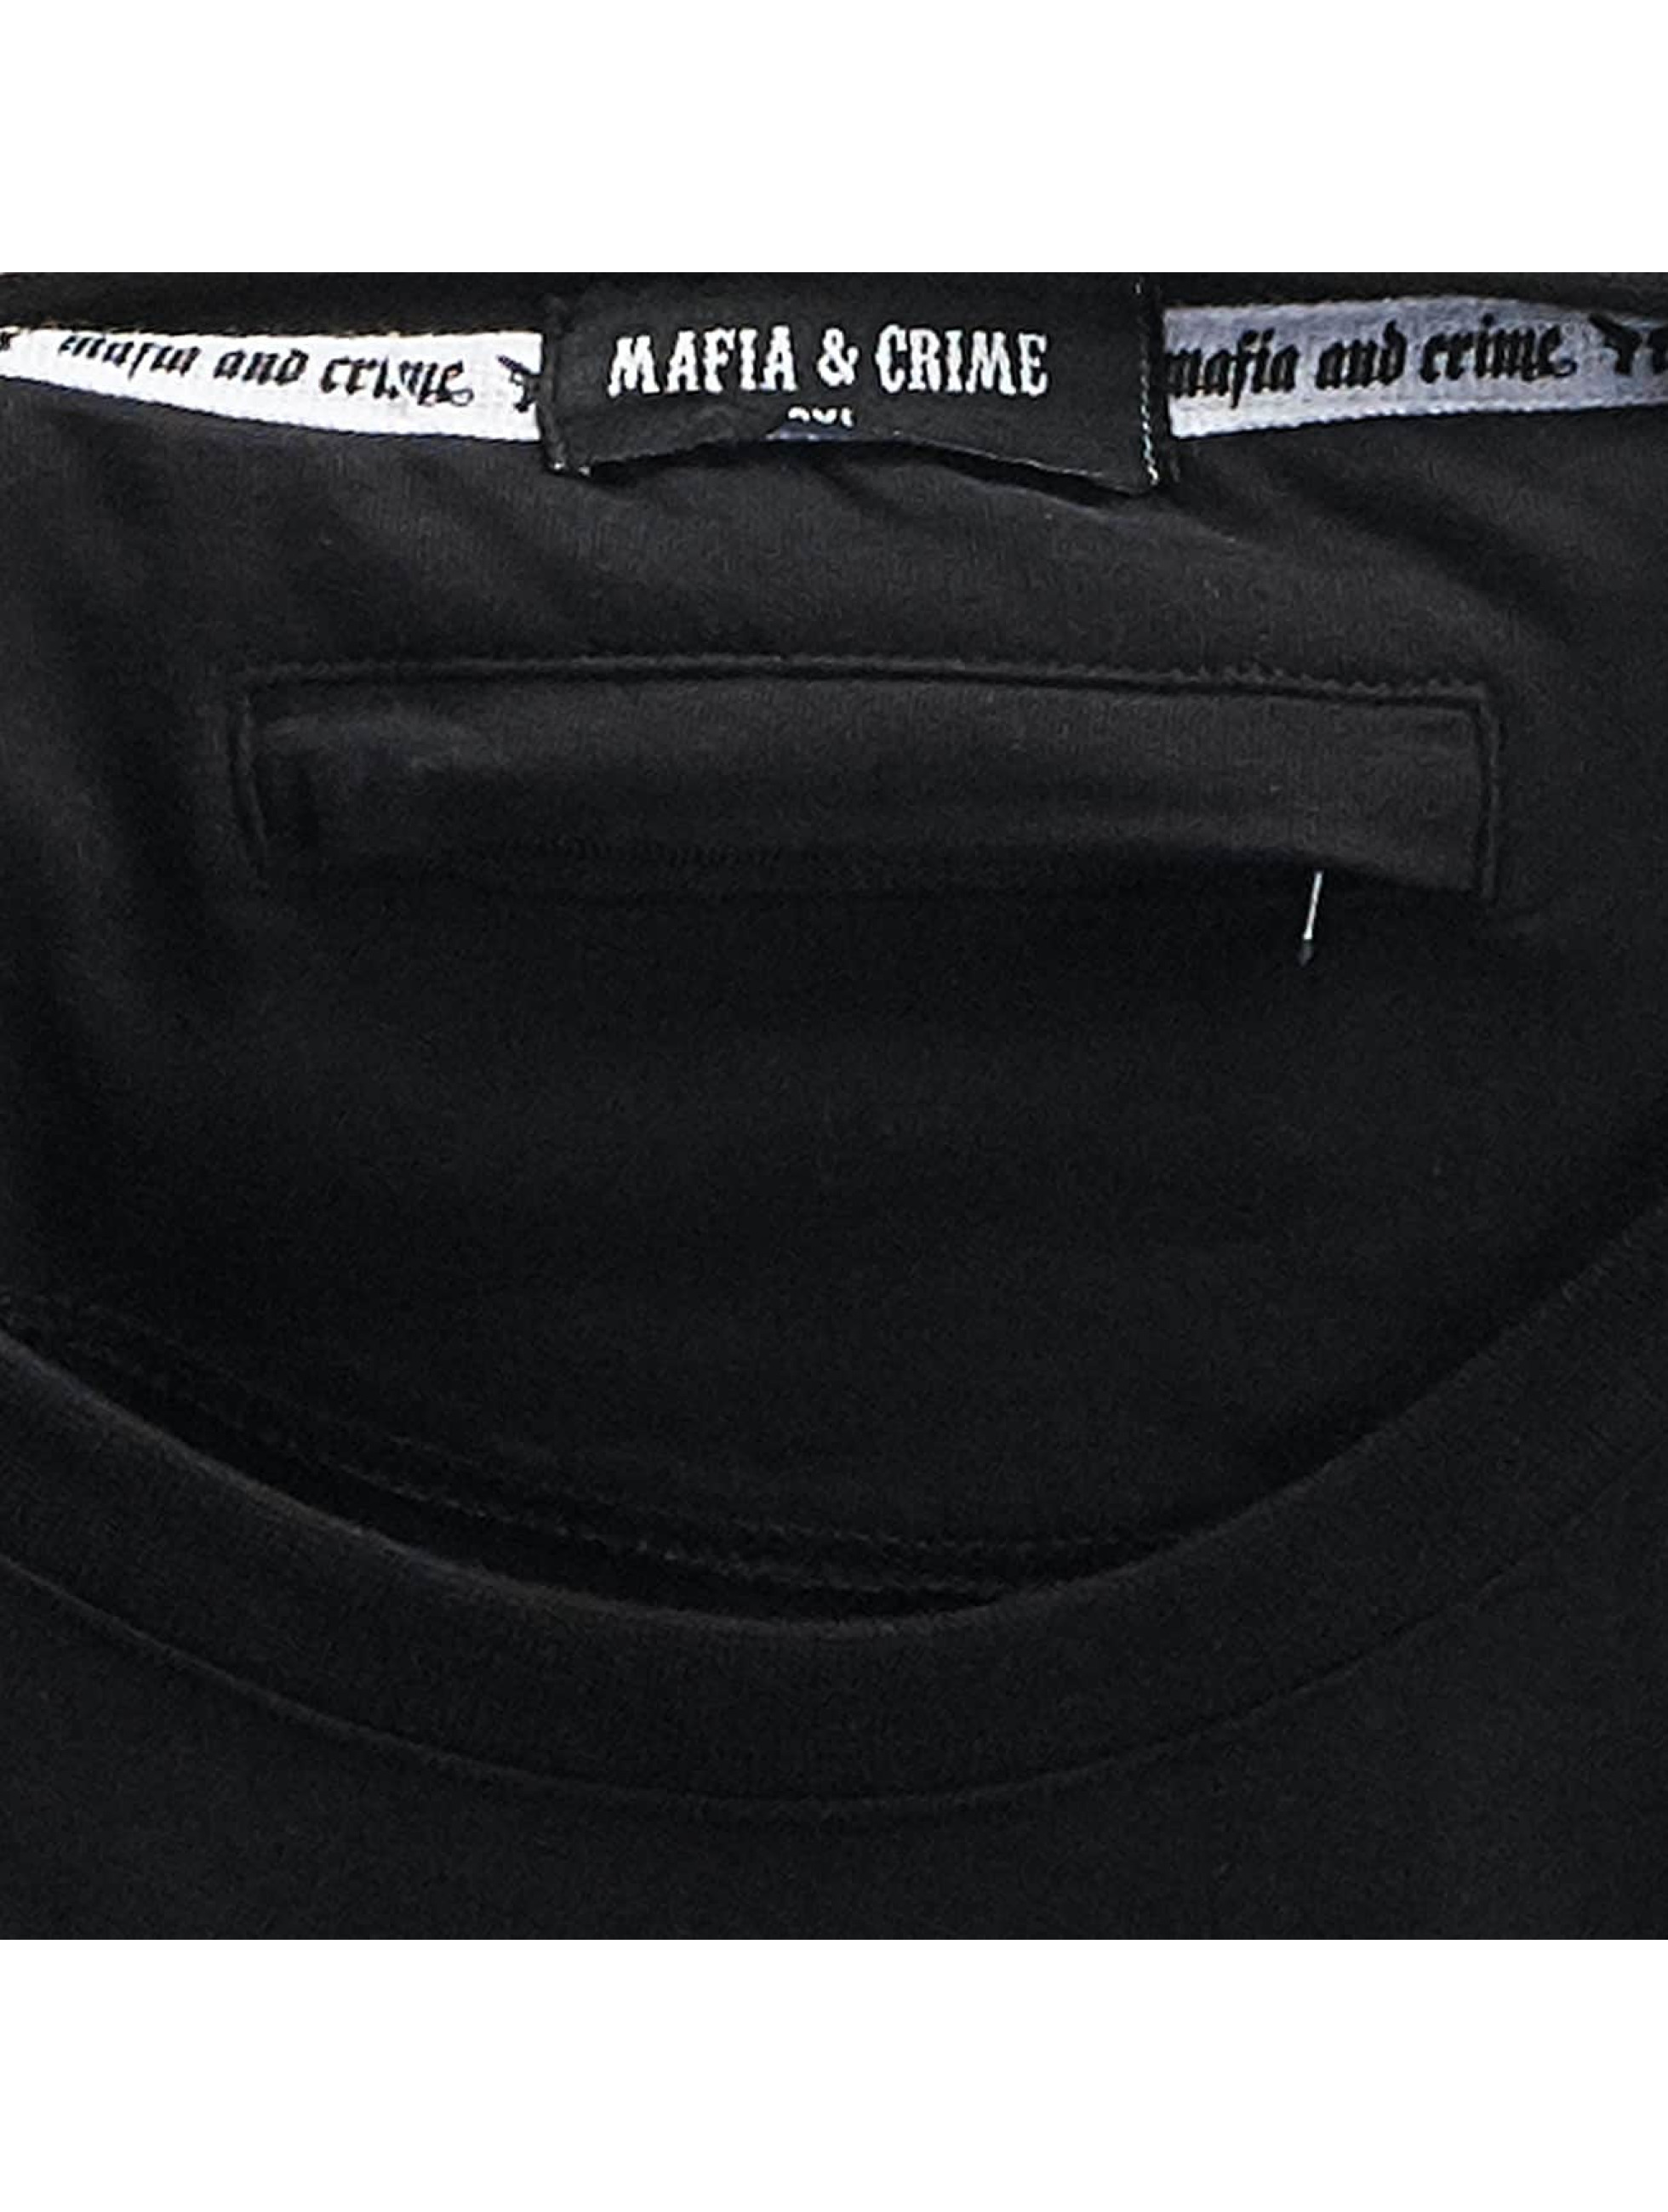 Mafia & Crime T-Shirt Bad Angel Crime Seduction black